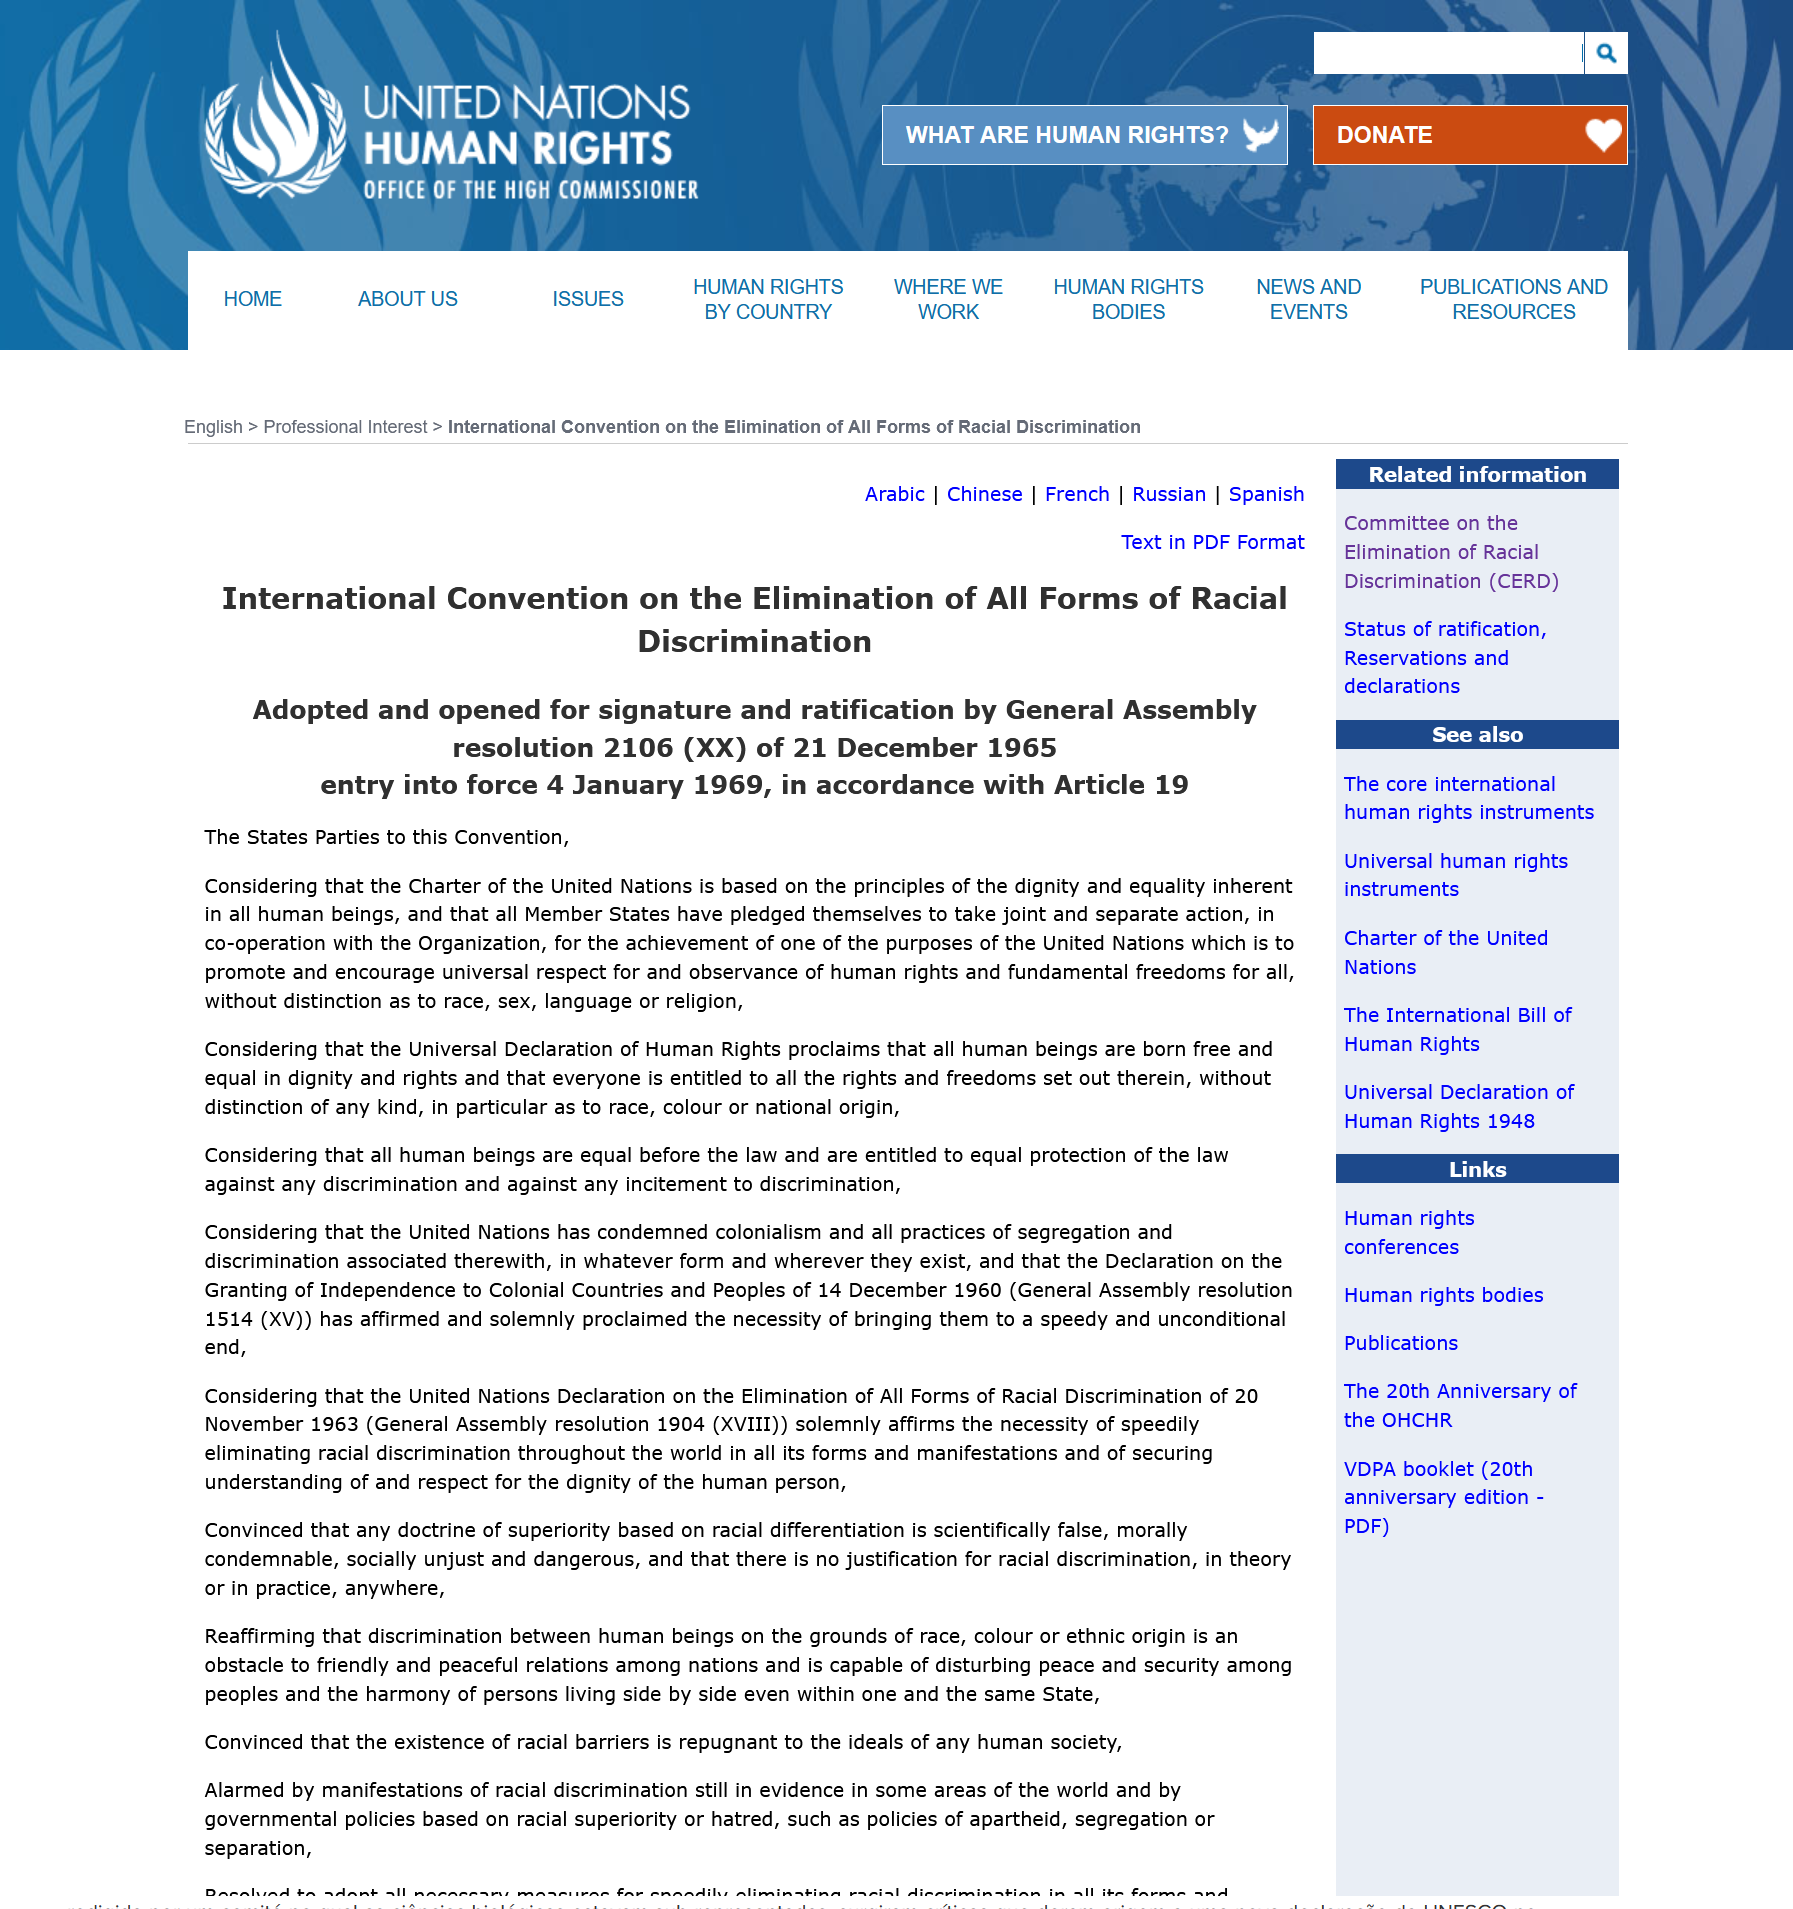 ohchr - ratification of the convention on the elimination of all forms of racial discrimination OHCHR – Ratification of the Convention on the Elimination of All Forms of Racial Discrimination OHCHR International Convention on the Elimination of All Forms of Racism capa